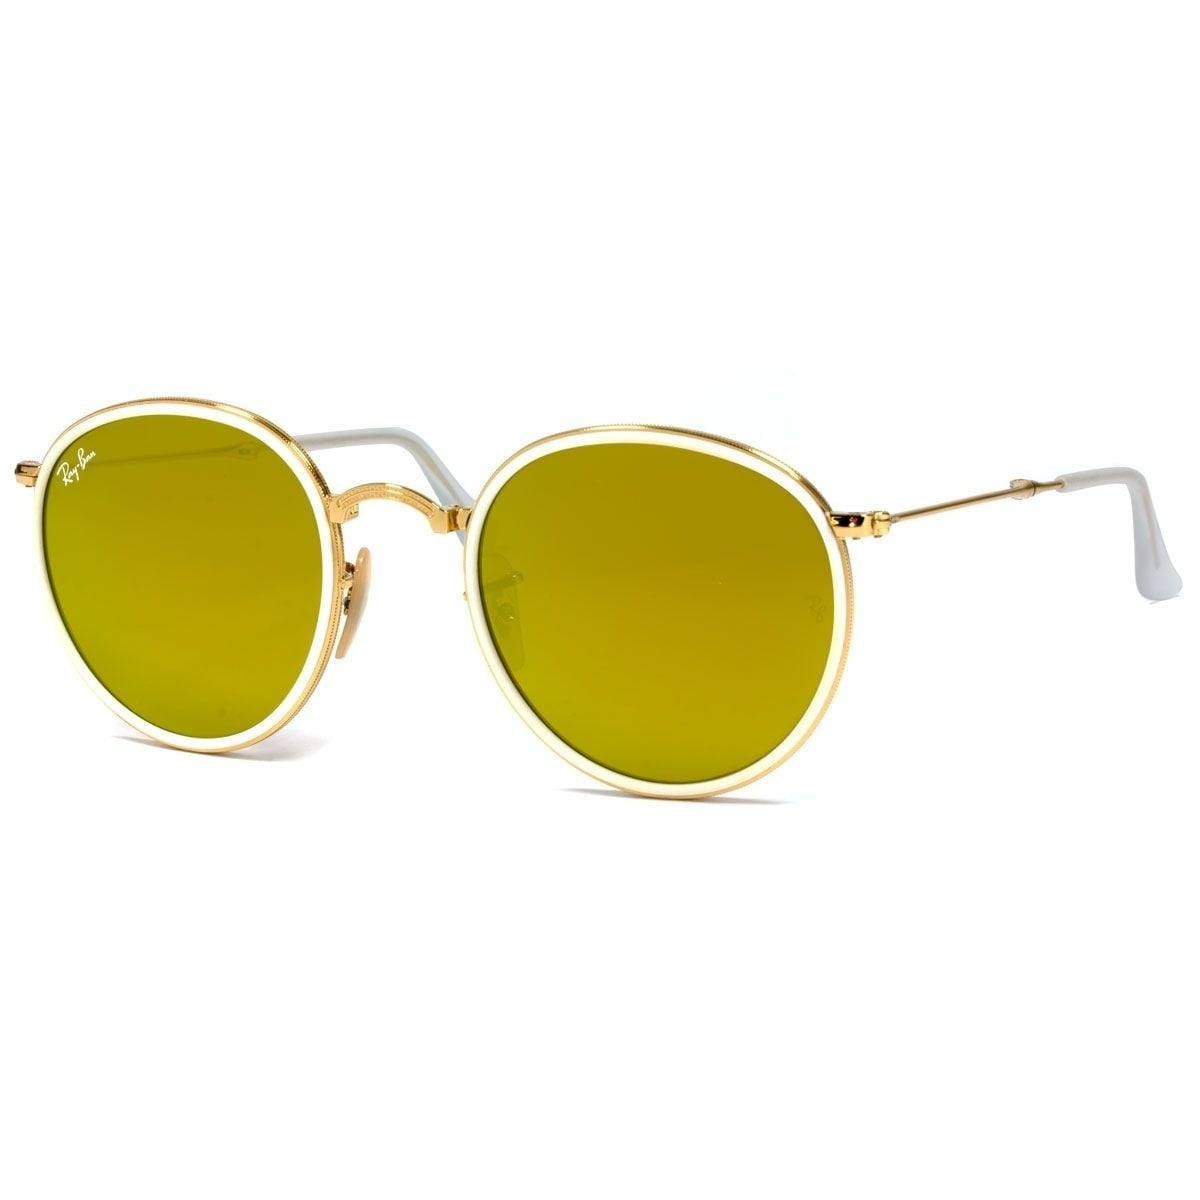 acfbf12b8b Shop Ray-Ban Men s RB3517 Round Folding Gold Frame Yellow Flash 51mm Lens  Sunglasses - Free Shipping Today - Overstock - 17754365